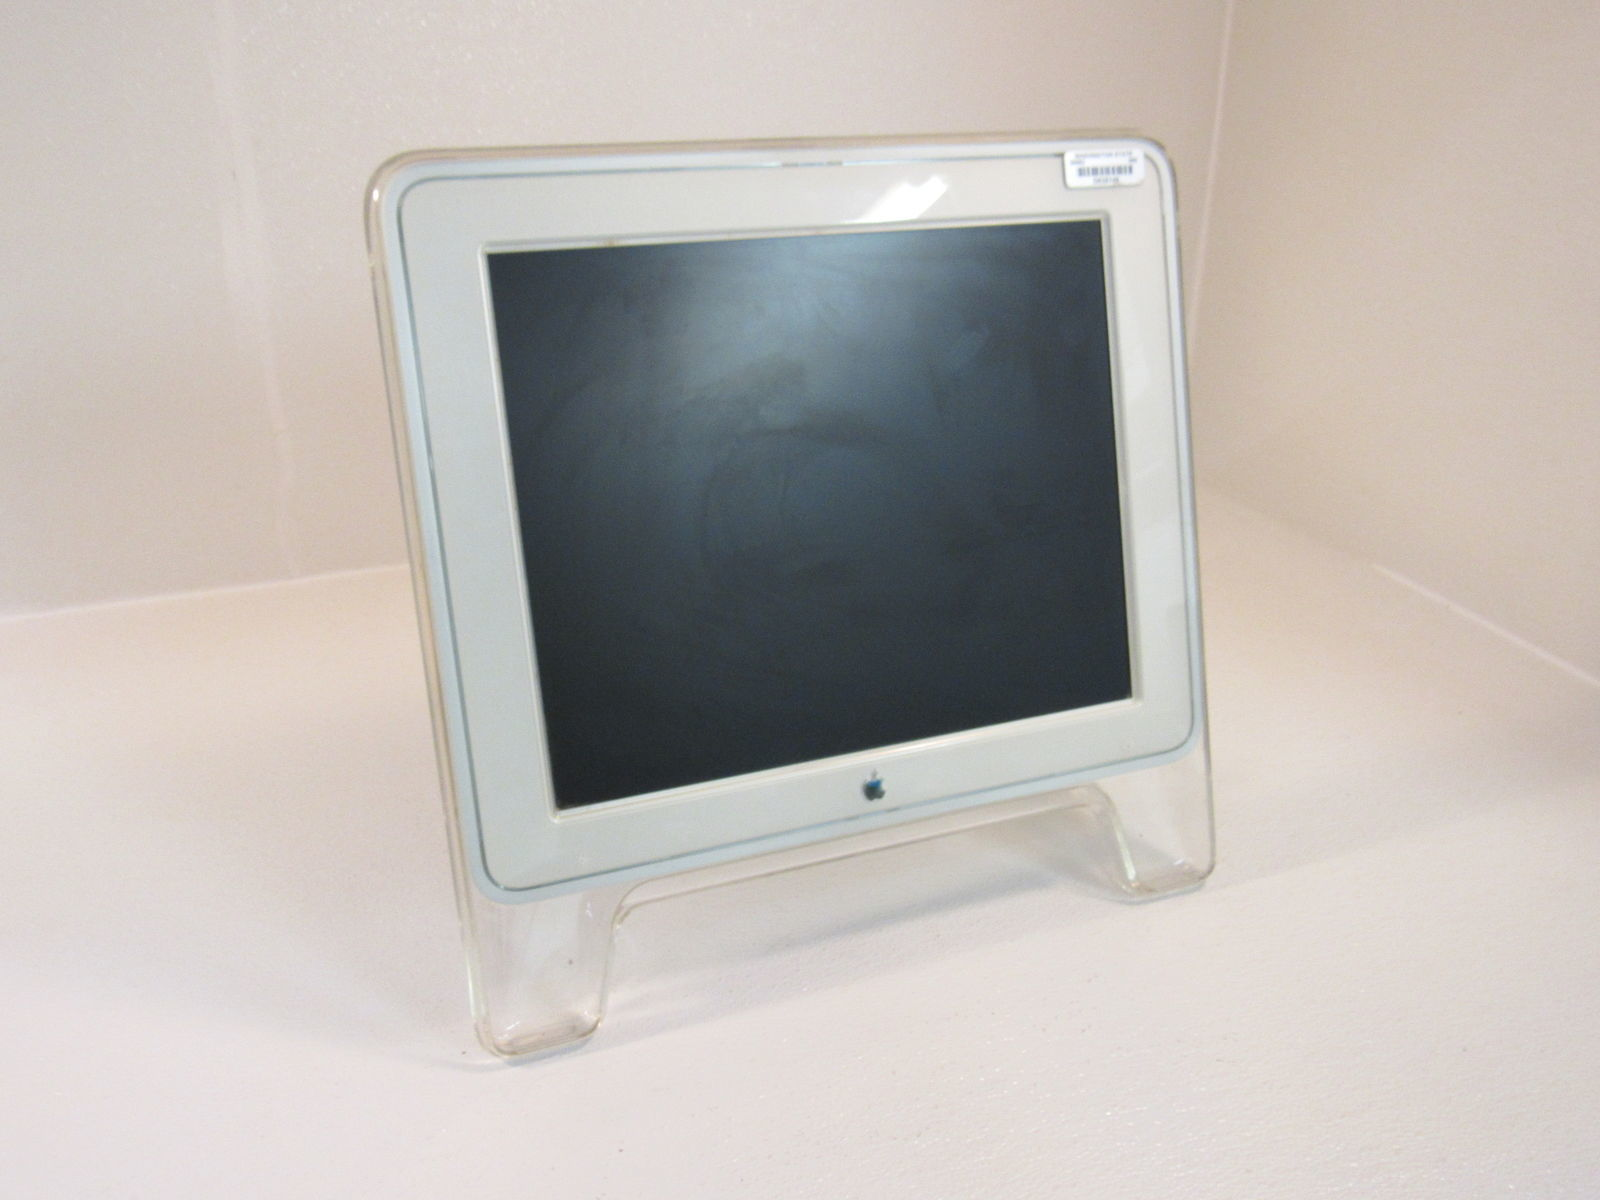 Apple 17in Studio Display Monitor LCD White/Grey Designed For Power Mac M7649